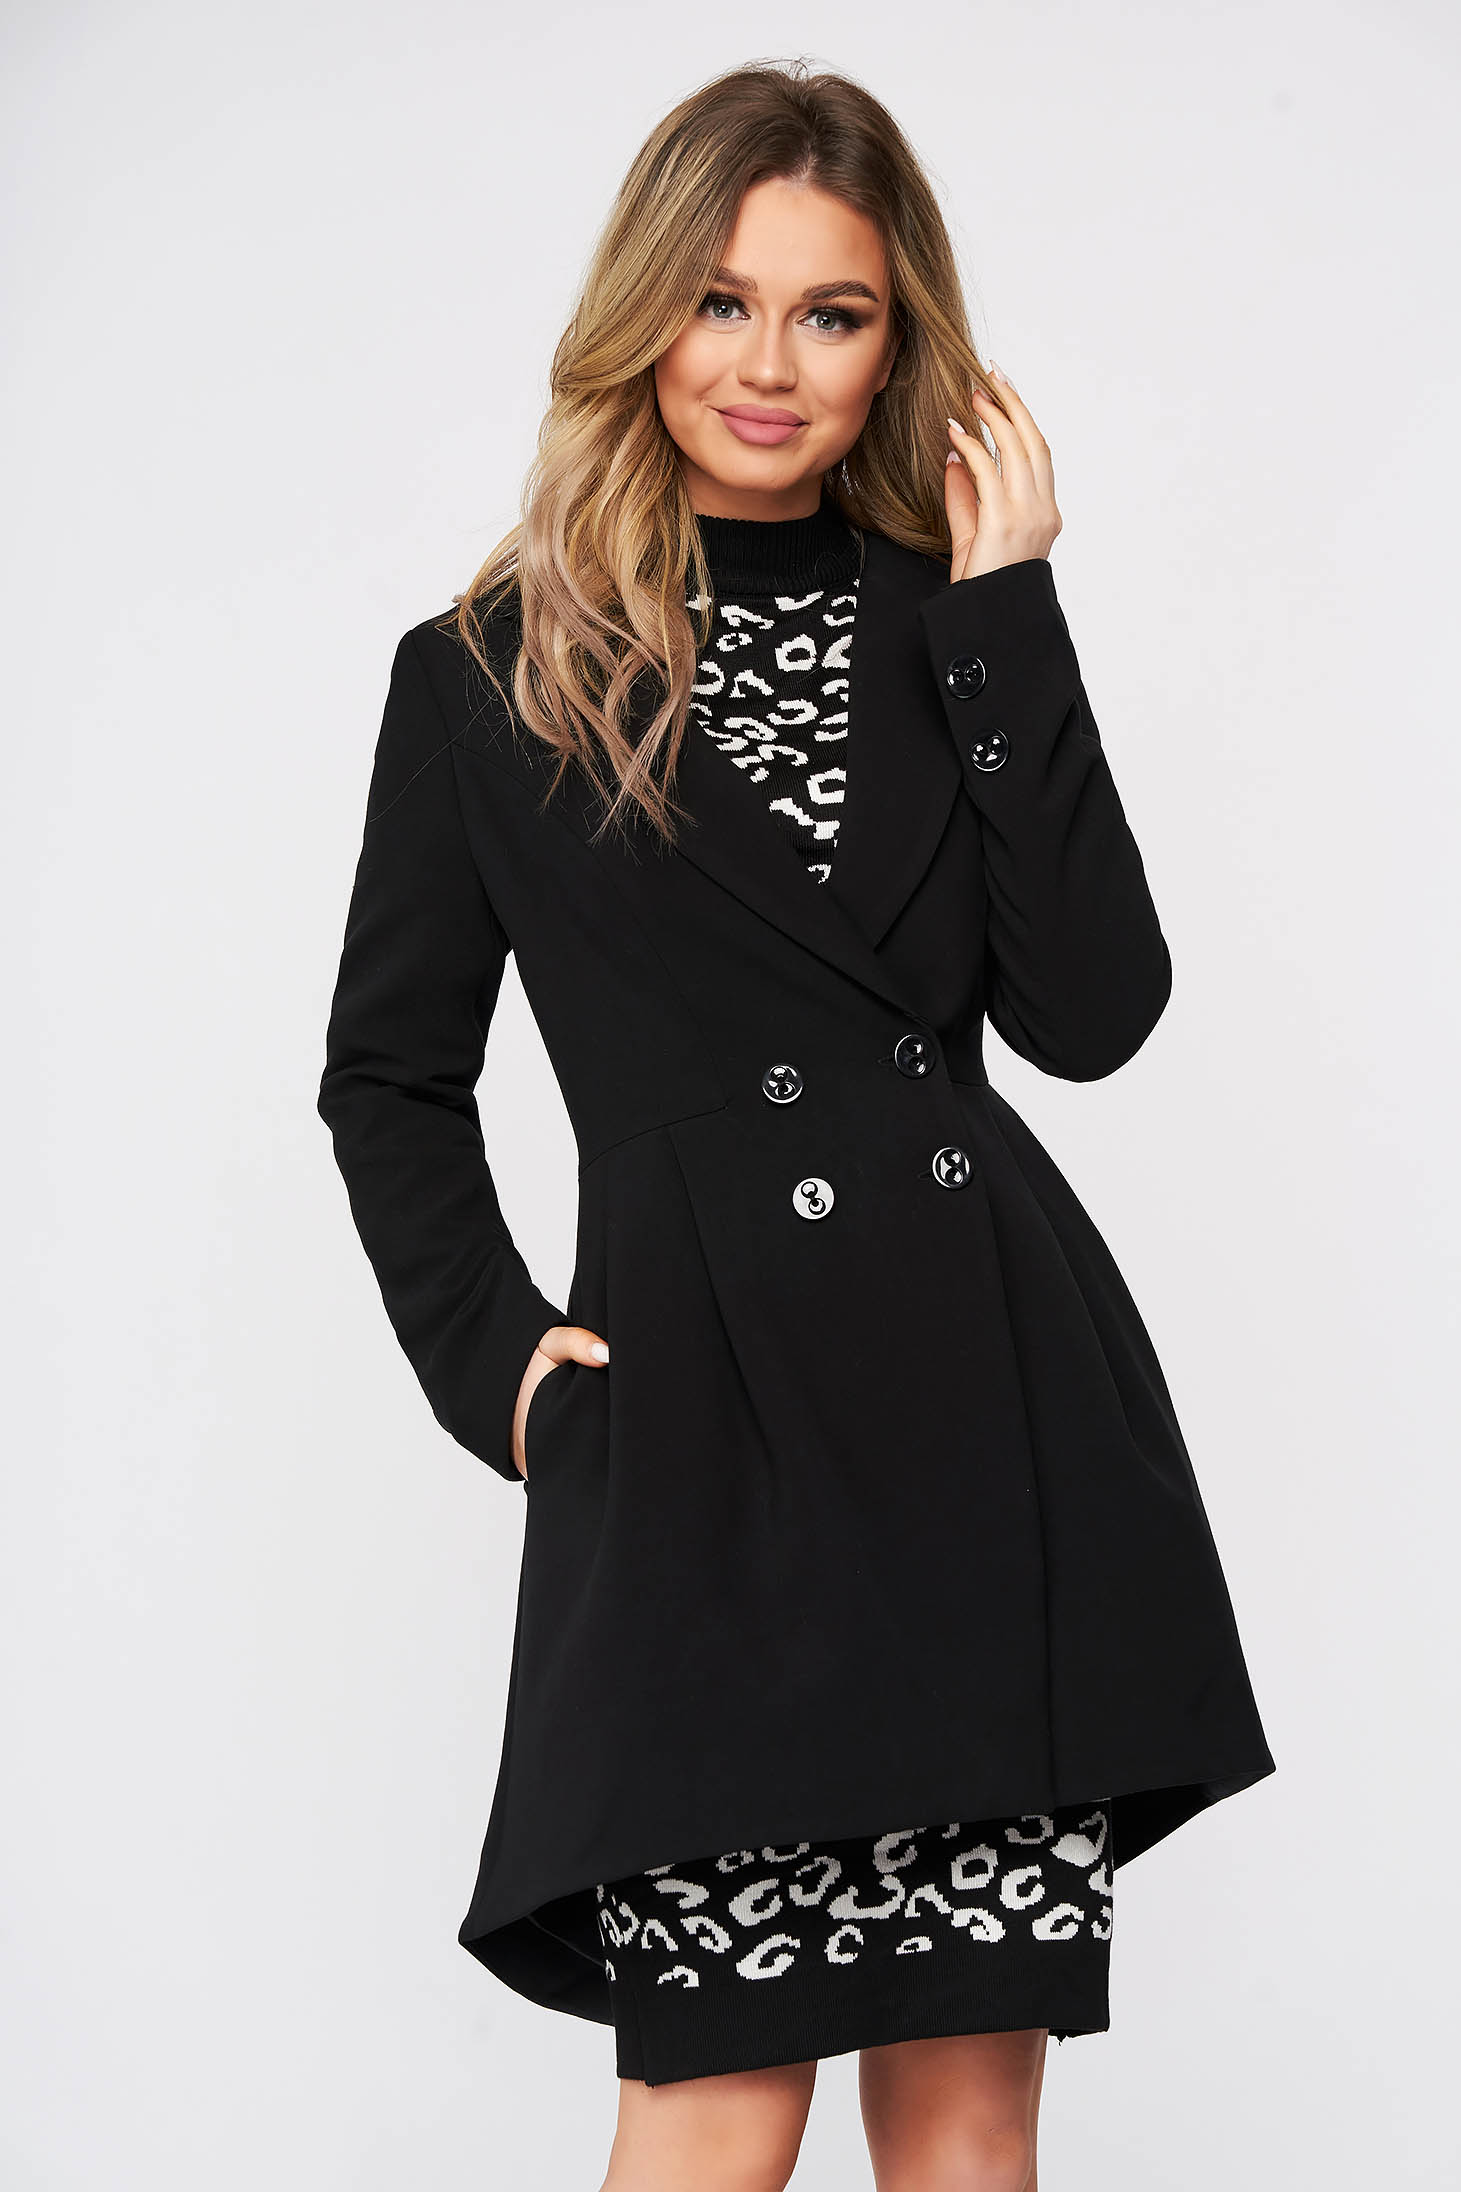 Overcoat black tented with inside lining slightly elastic fabric